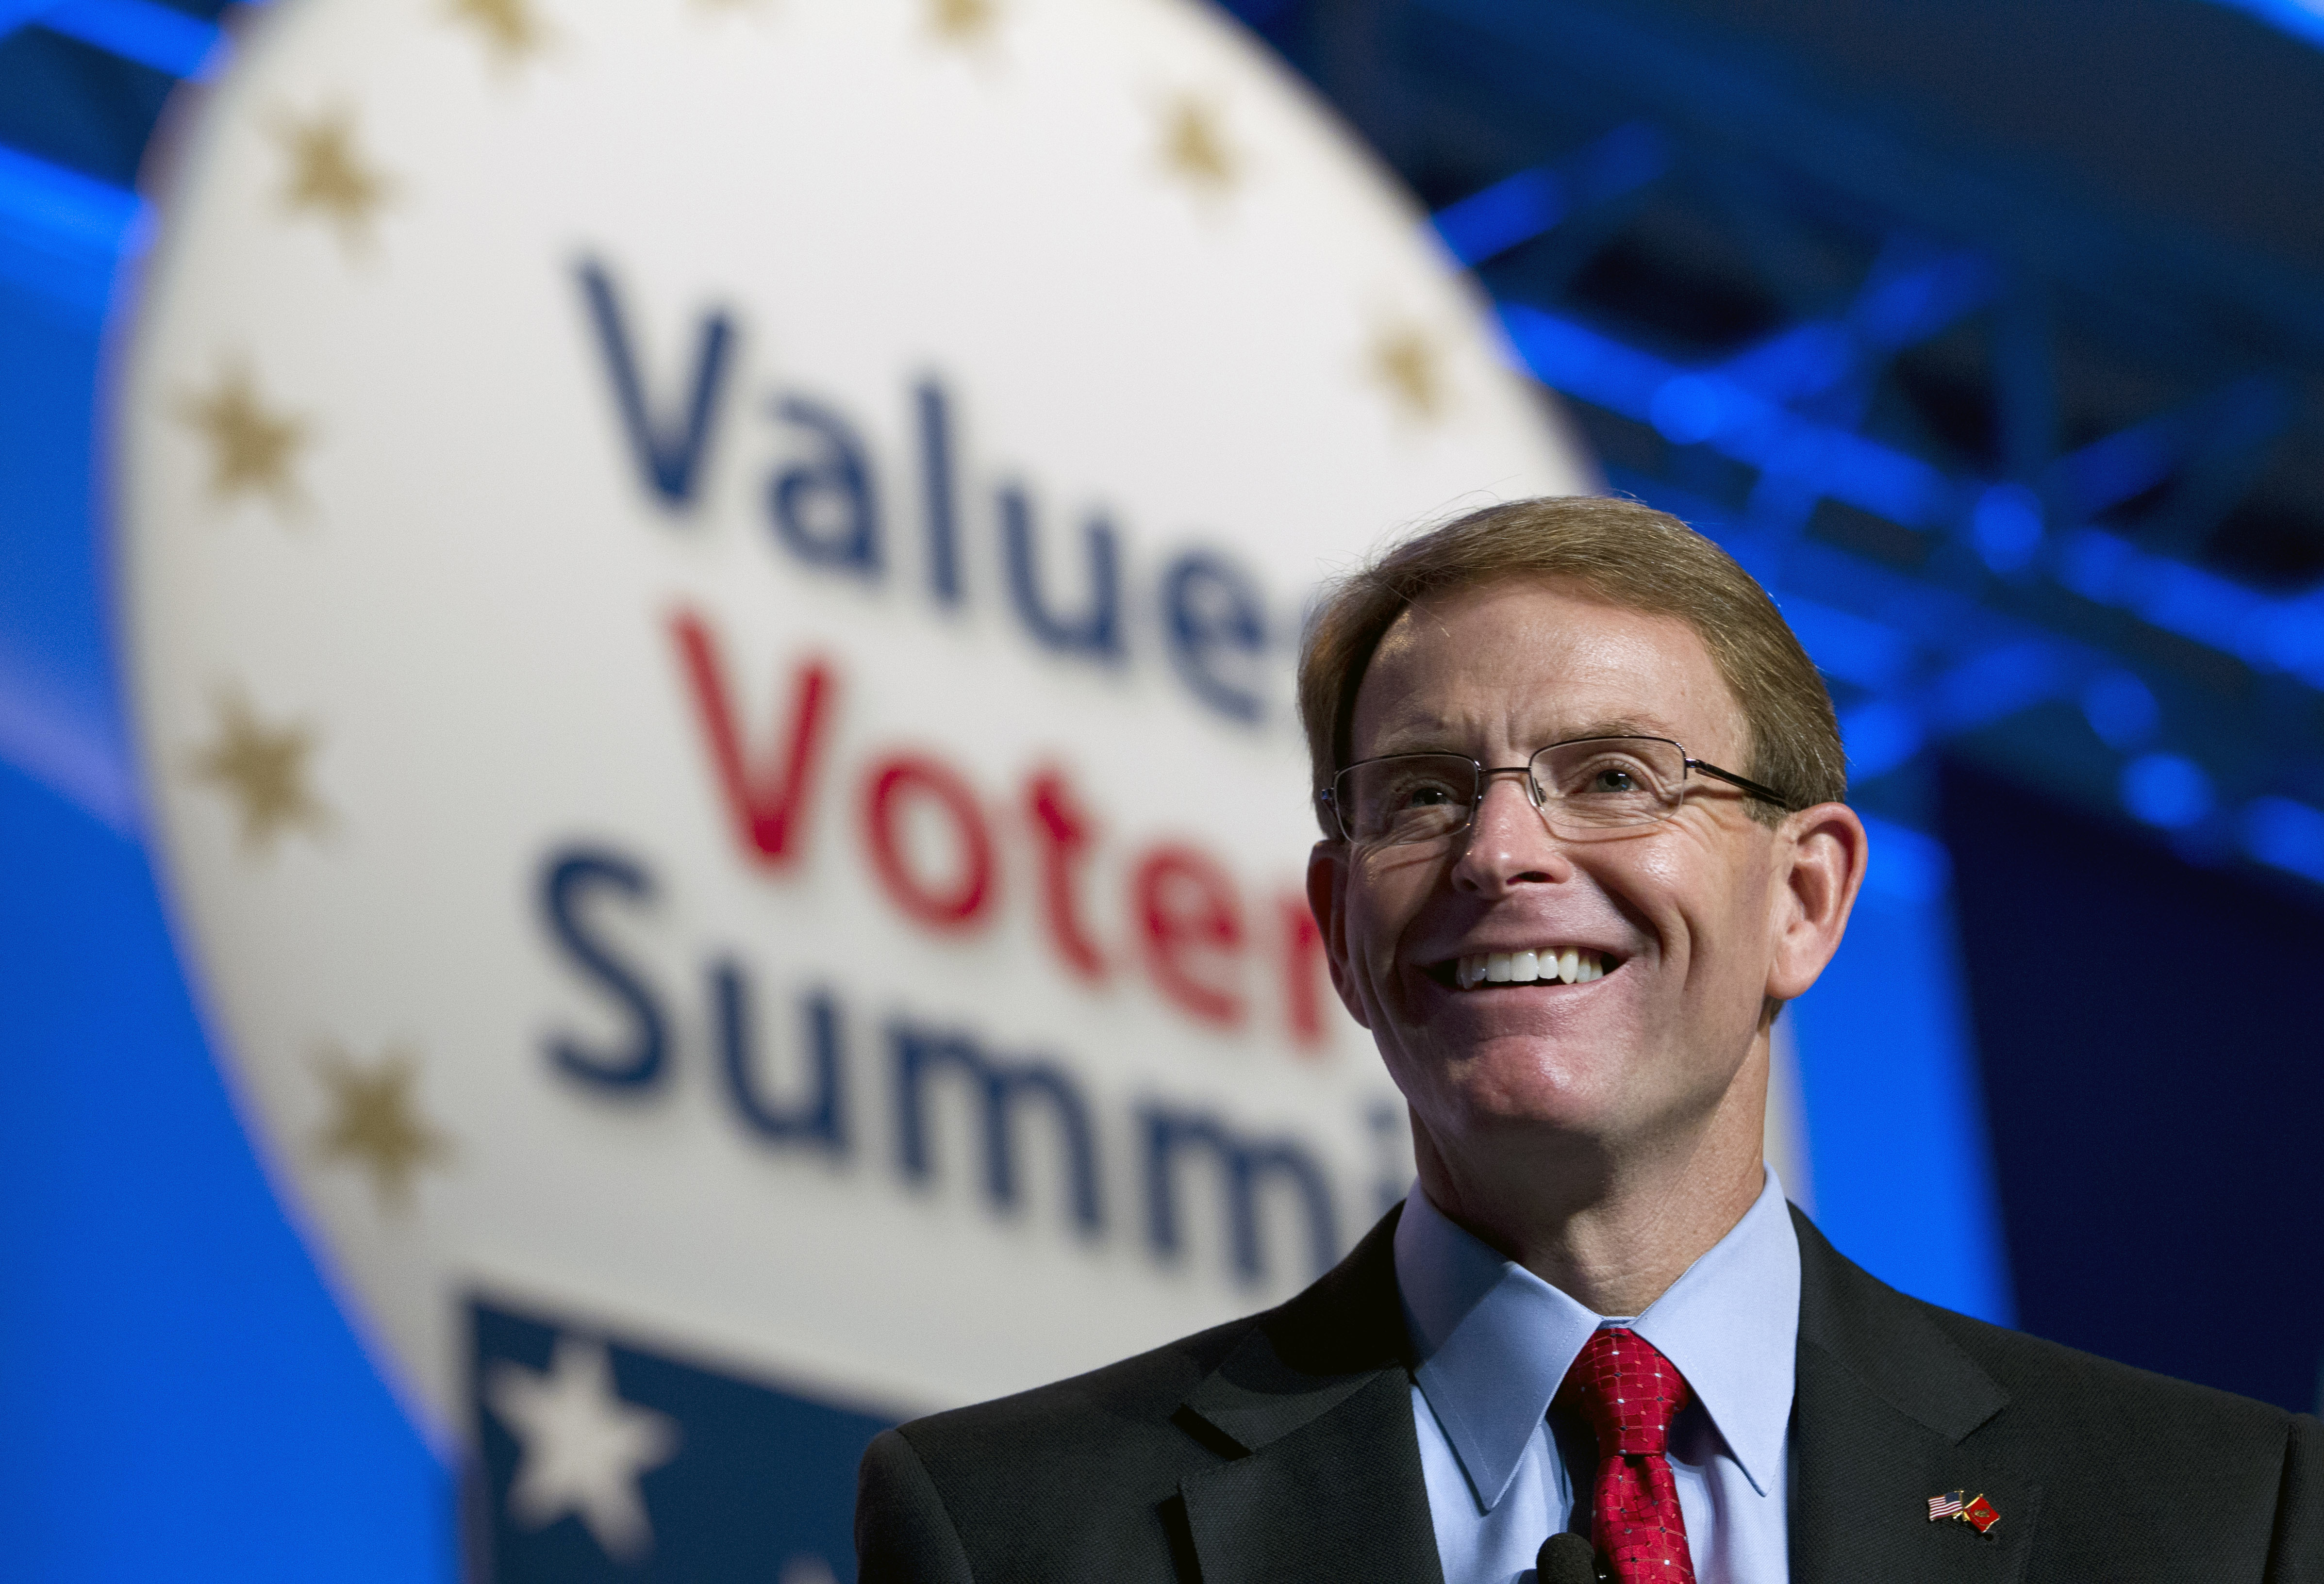 FRCAction and Family Research Council President Tony Perkins, speaks during the Values Voter Summit, held by the Family Research Council Action, on Oct. 11, 2013, in Washington, D.C.